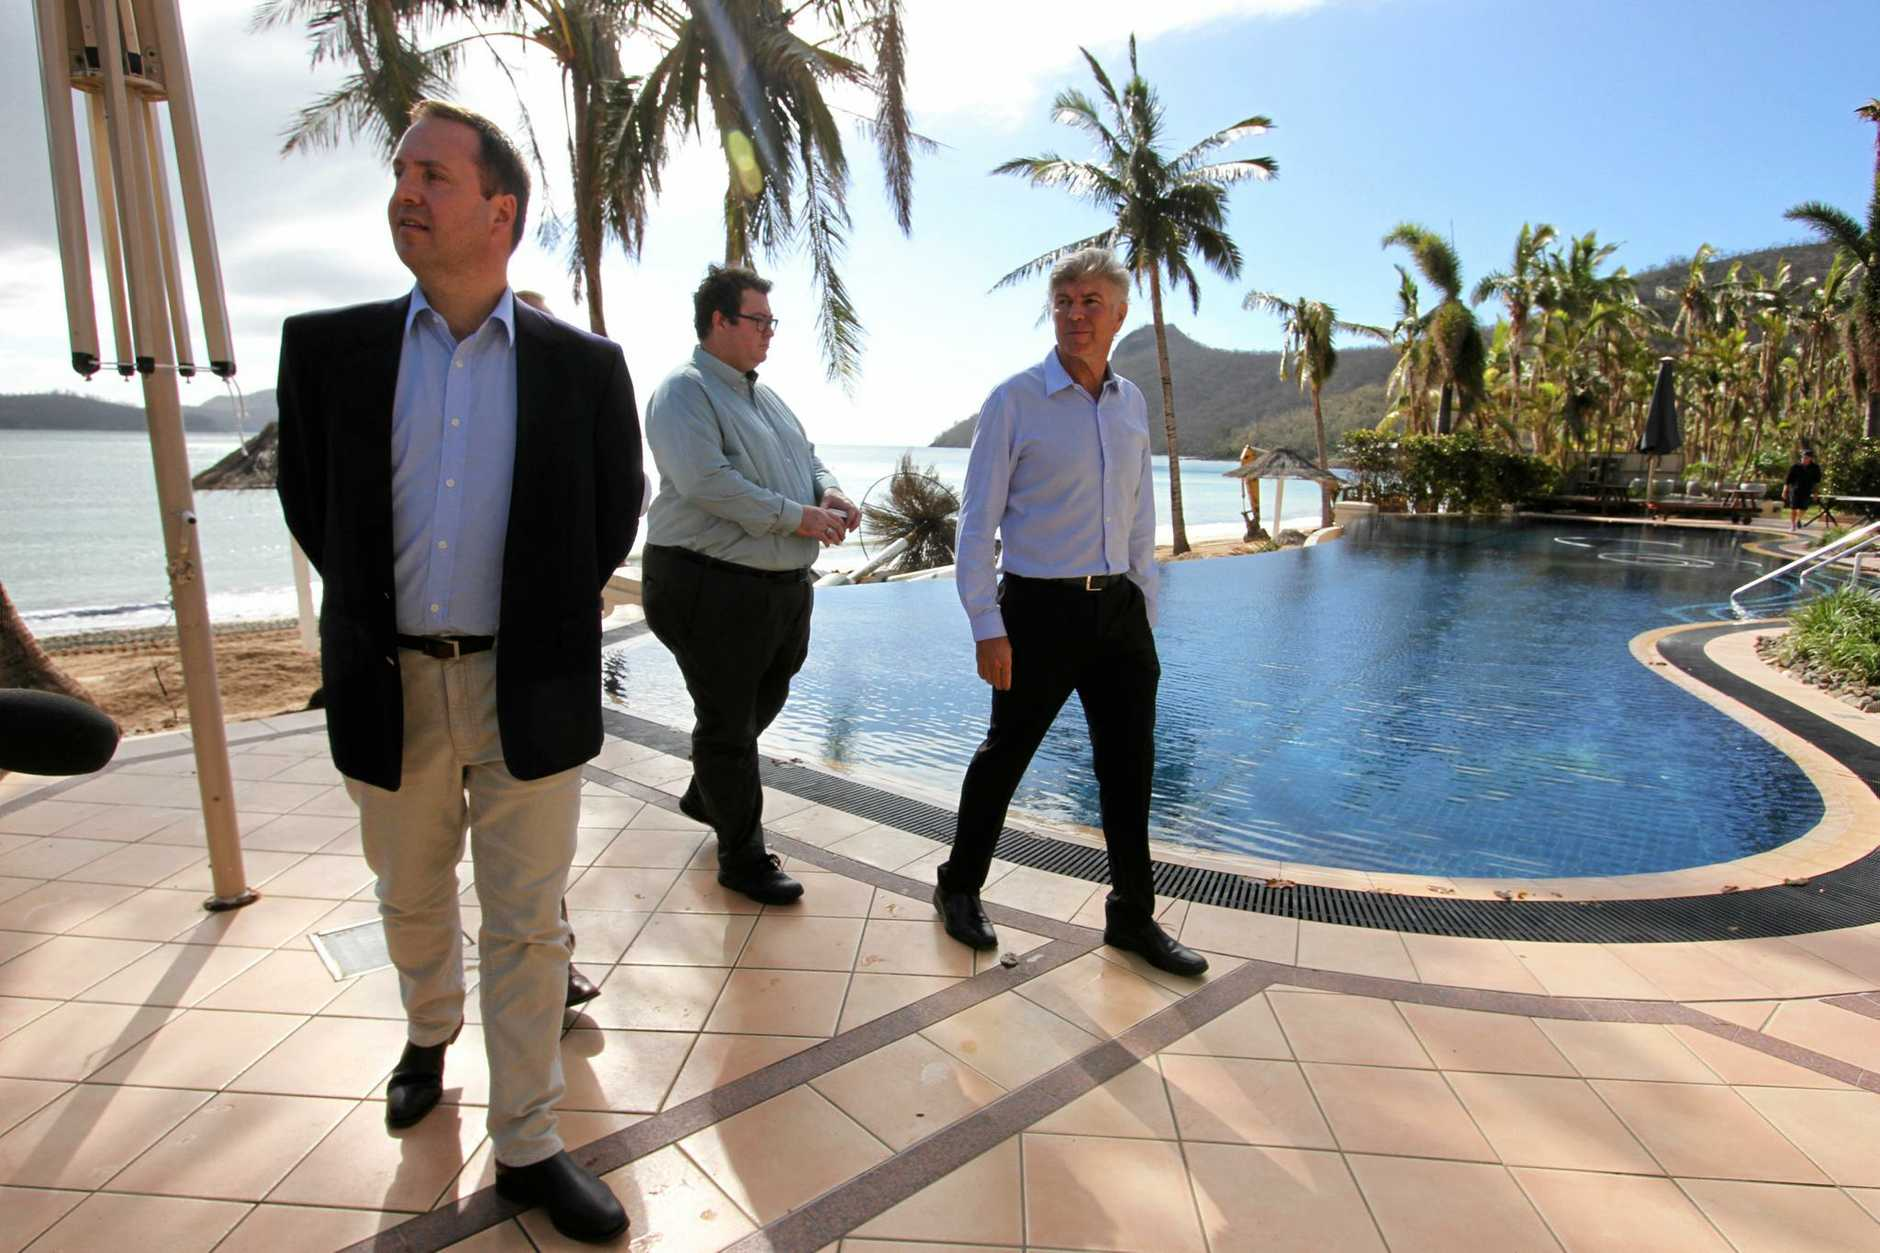 Hamilton Island CEO Glenn Bourke shows Federal Tourism Minister Steven Ciobo and Federal Member for Dawson George Christensen around the Beach Club.